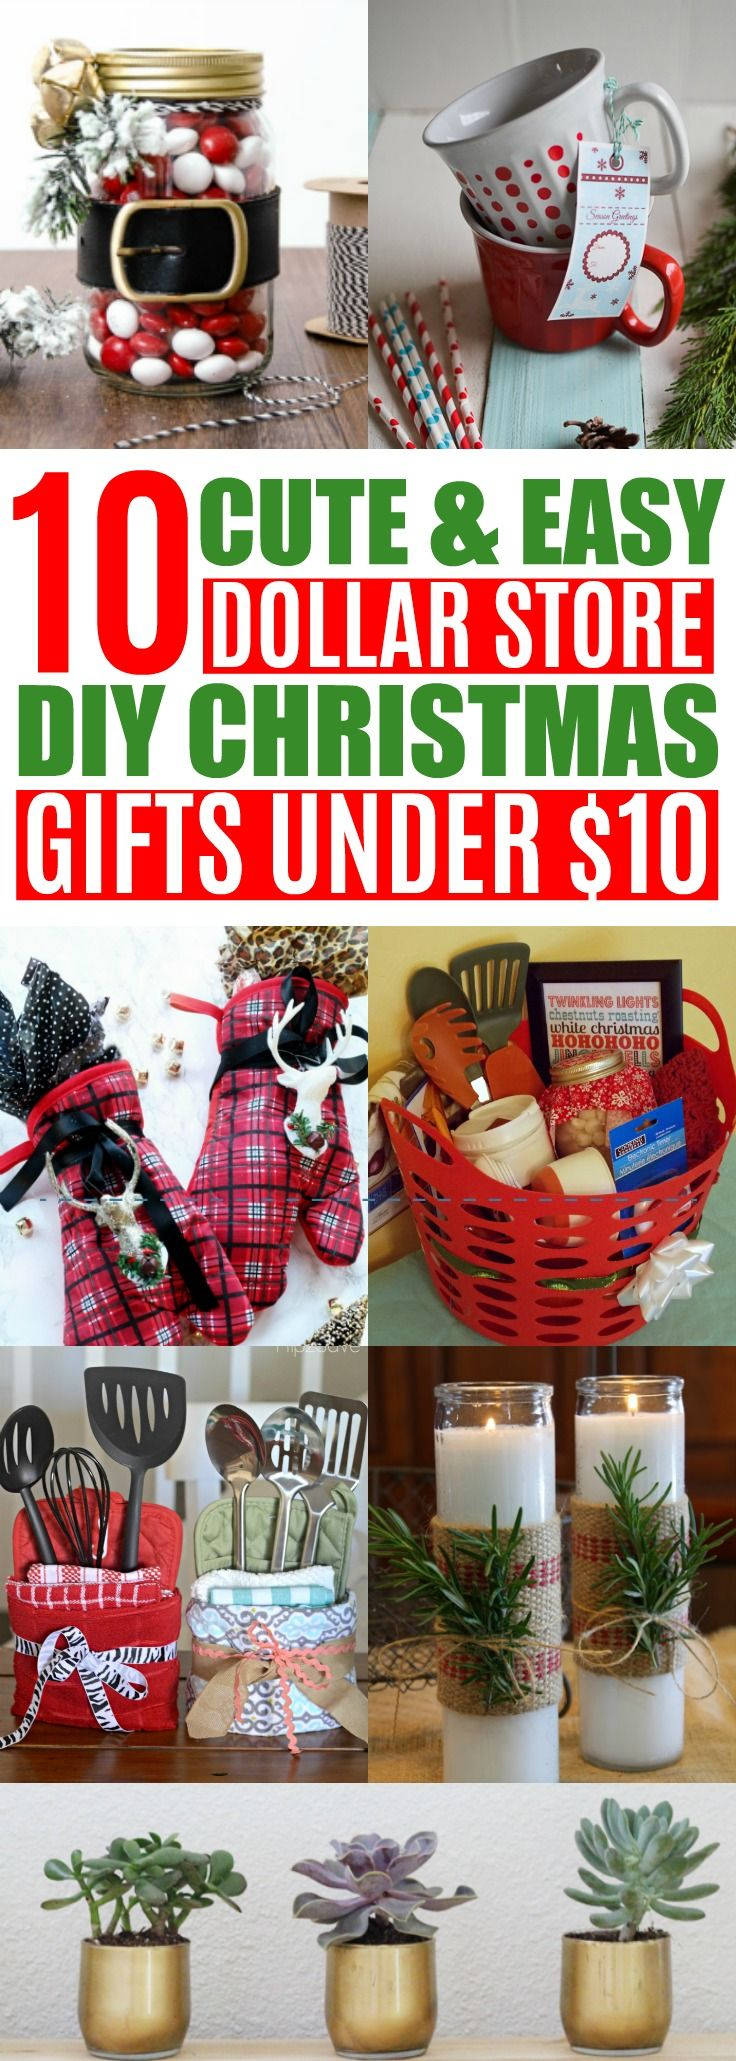 diy cheap christmas gift ideas from the dollar store under